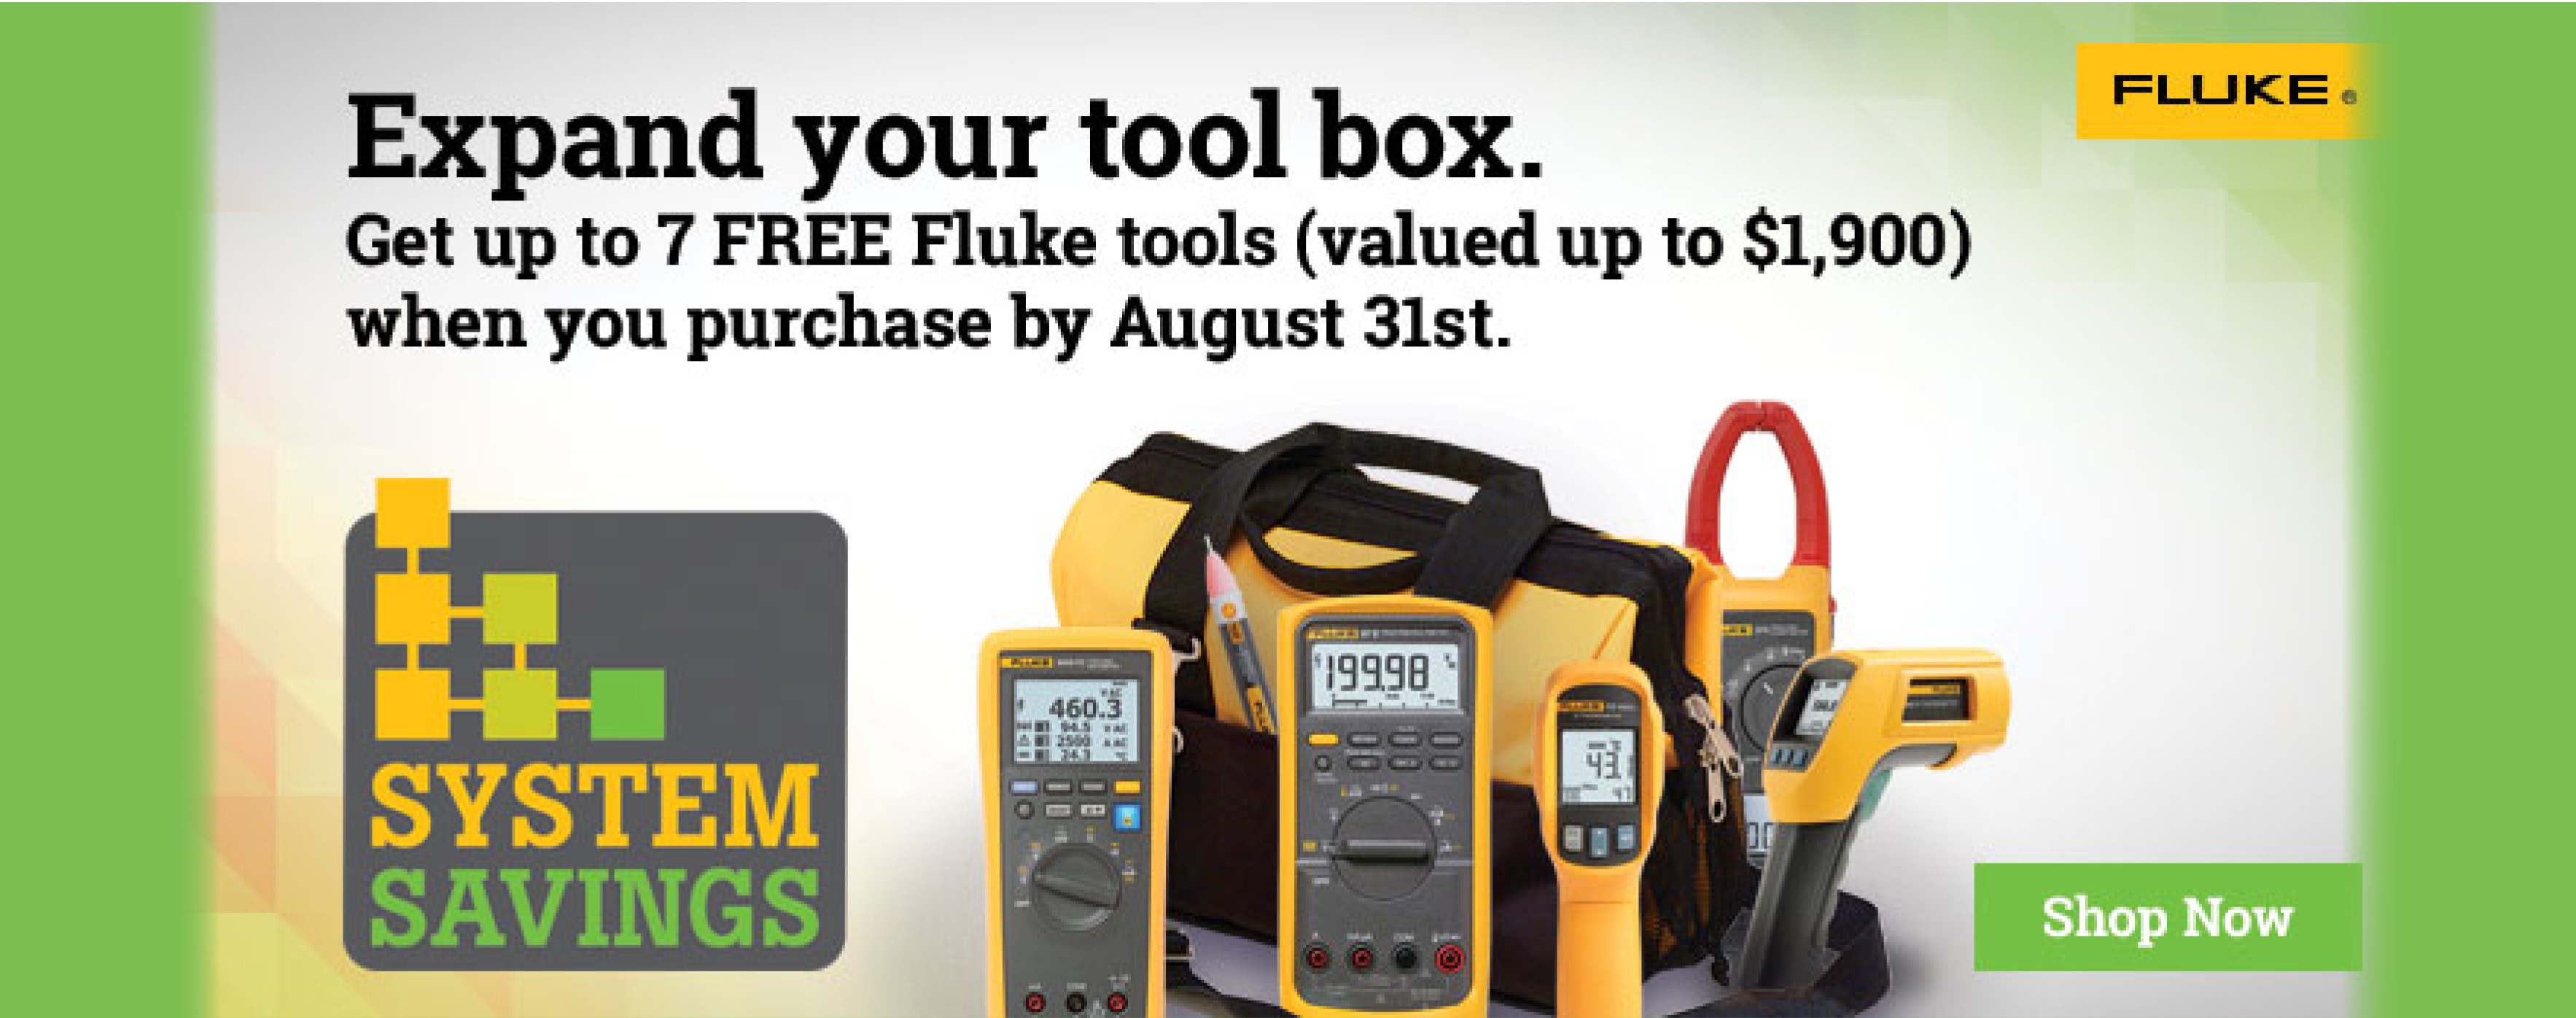 Fluke Free Good Promo through August, 2017